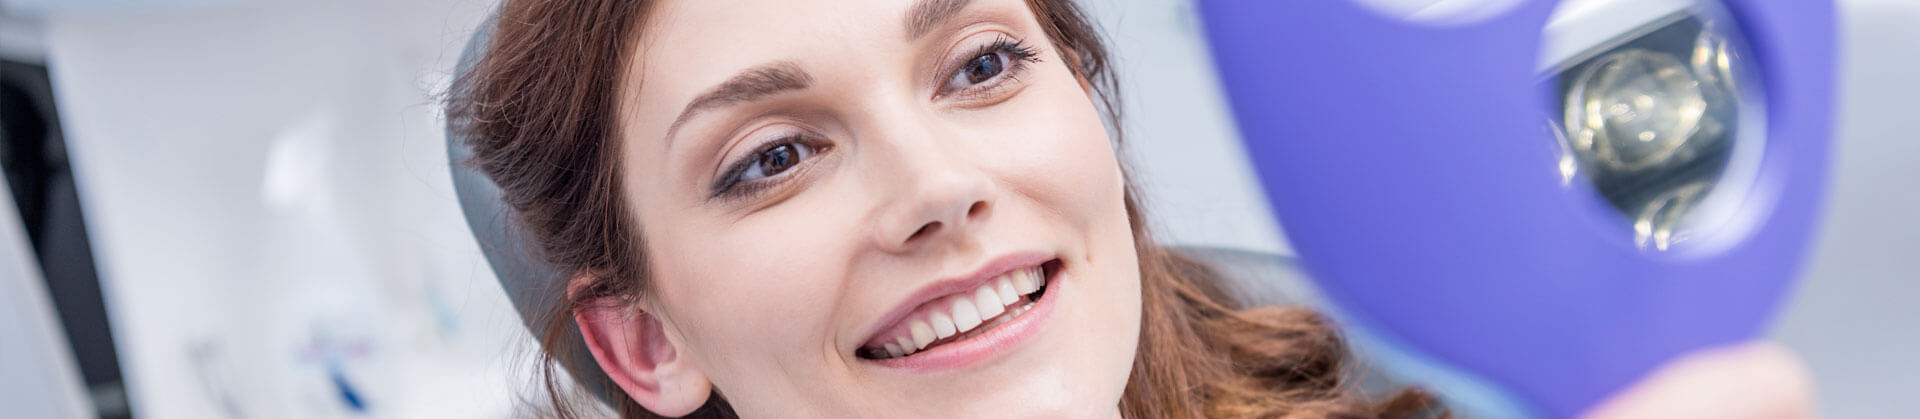 Cropped image of a female patient smiling and looking at her teeth in a hand mirror